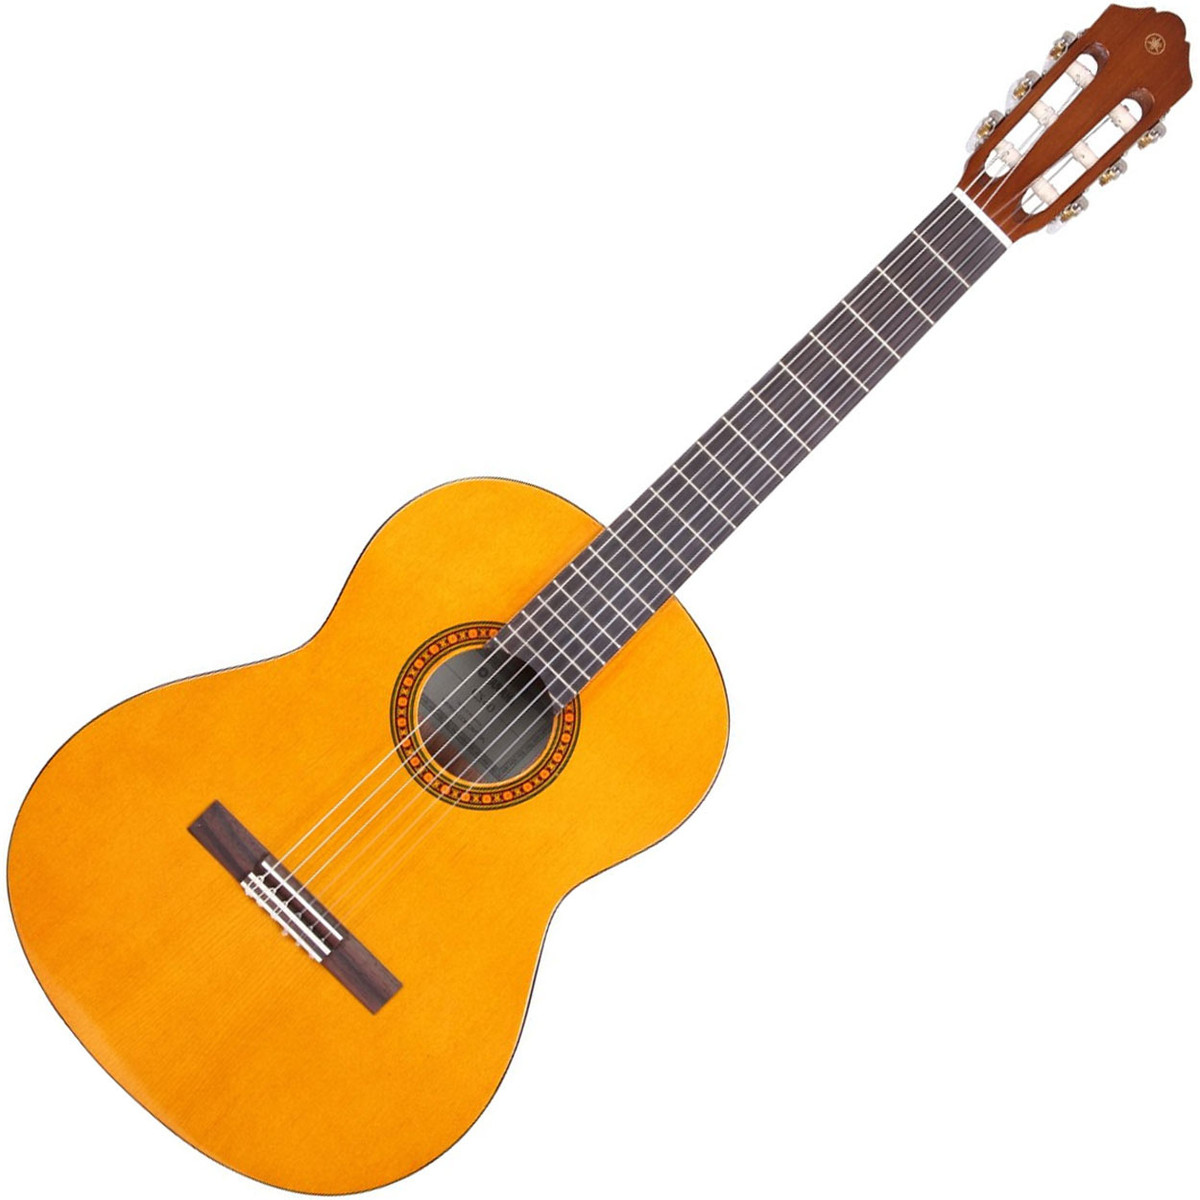 Yamaha Cs Guitar